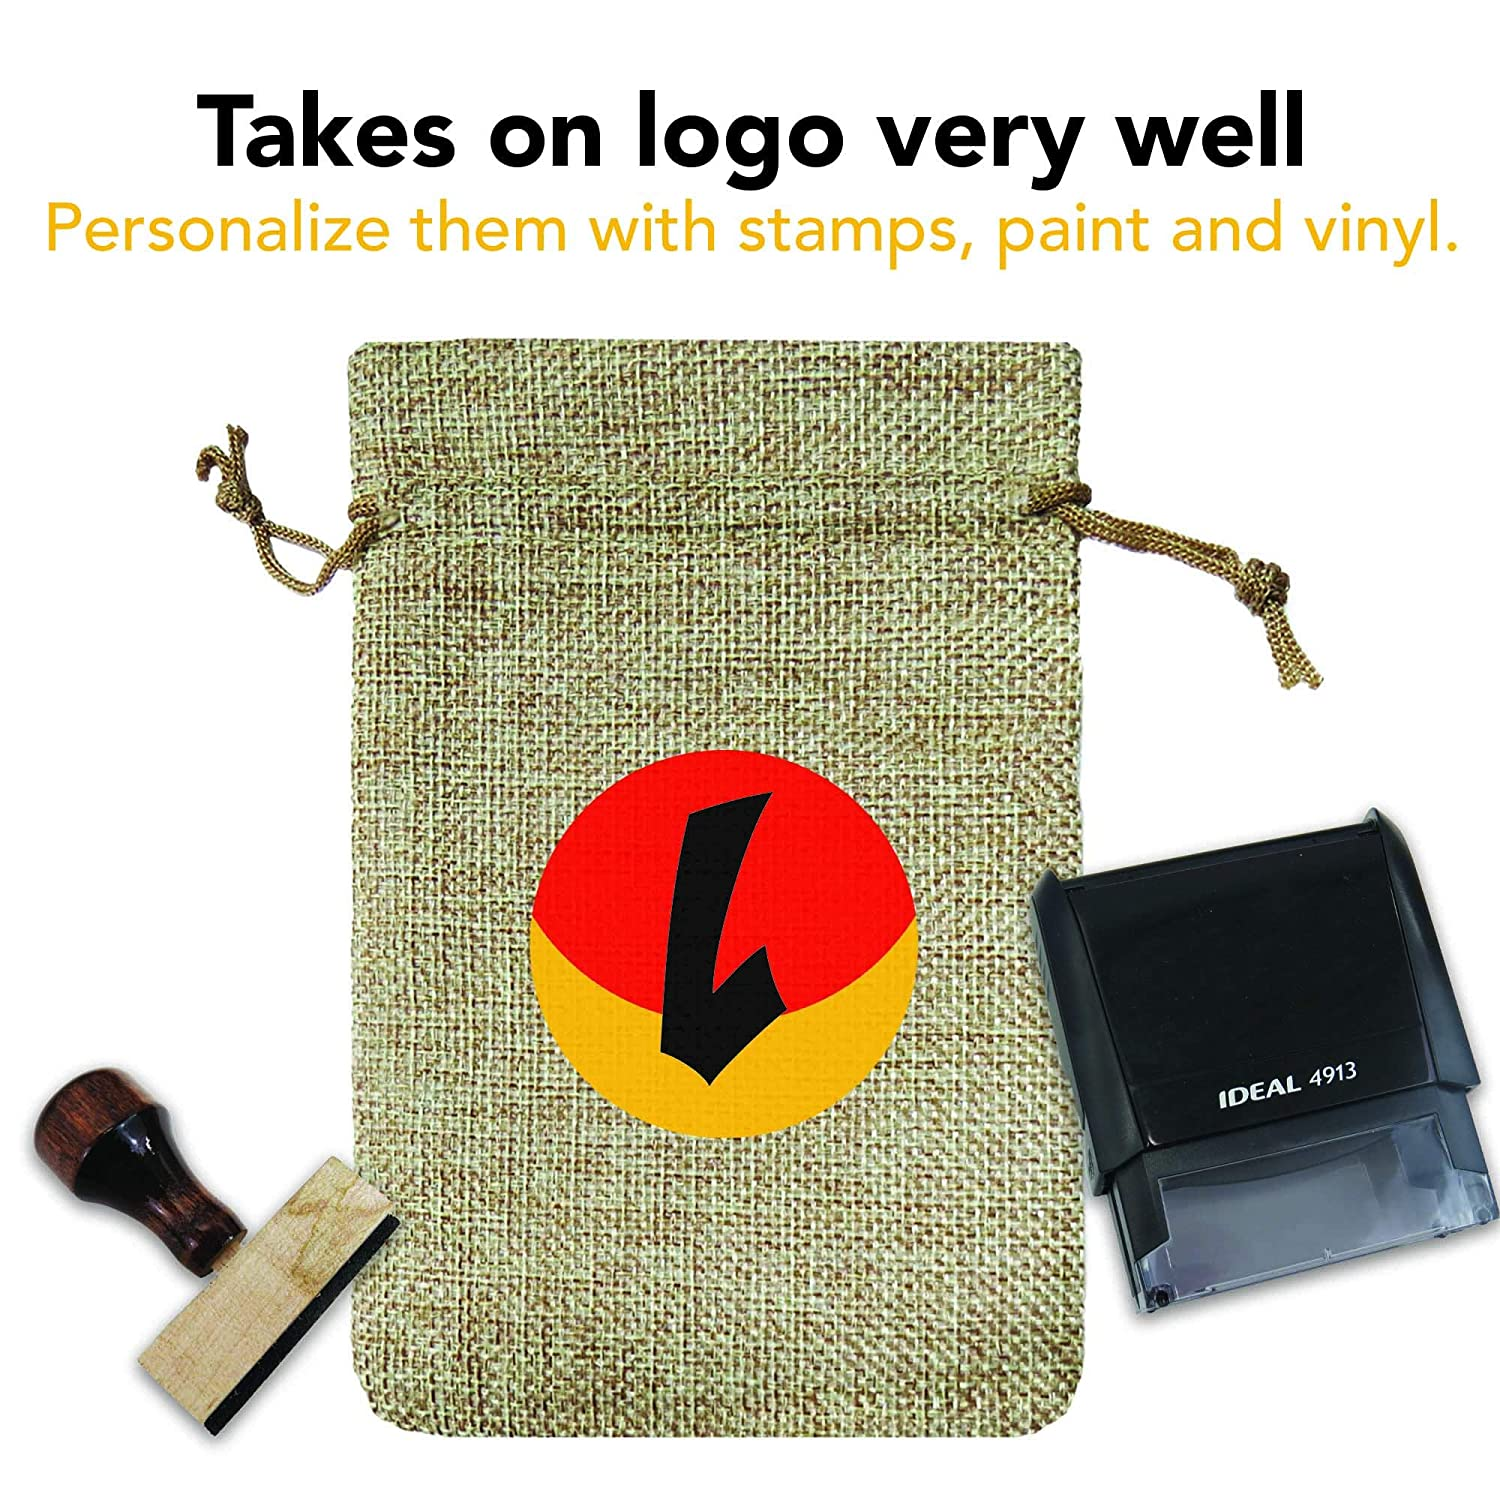 Jute Drawstring Bags for Party Favors !RAKRISA 25 Pcs 3x4 Inch Burlap Bags With Drawstring Wedding Party Favor /& Gifts